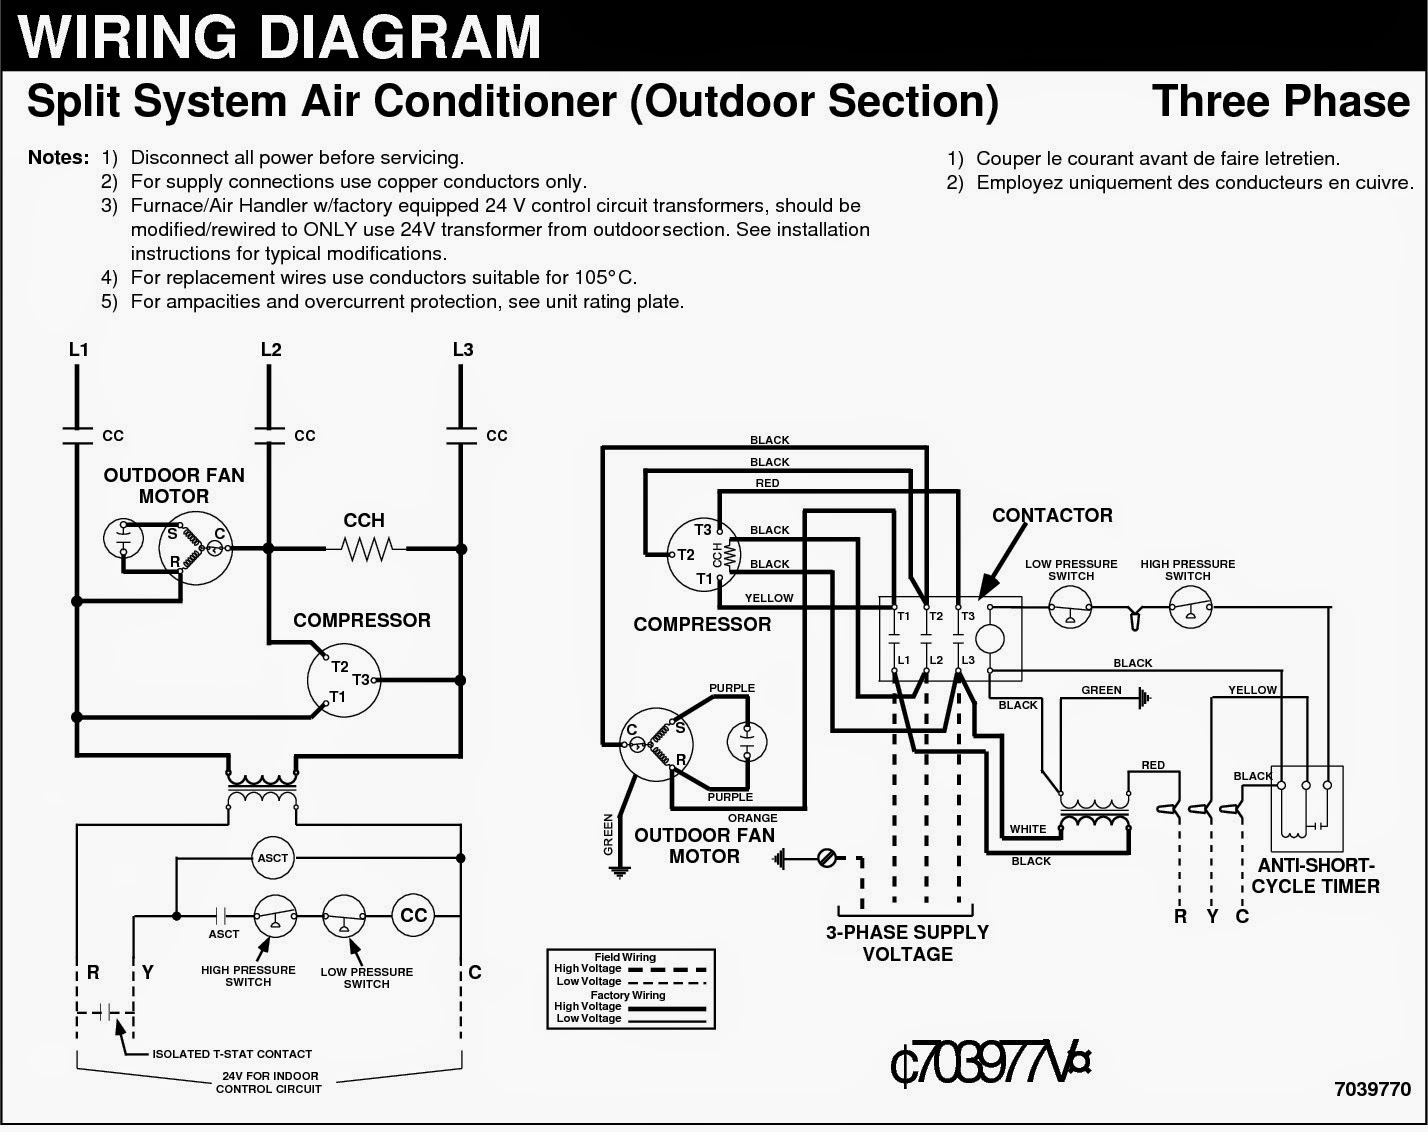 3+phase electrical wiring diagrams for air conditioning systems part two single humbucker wiring diagram at virtualis.co